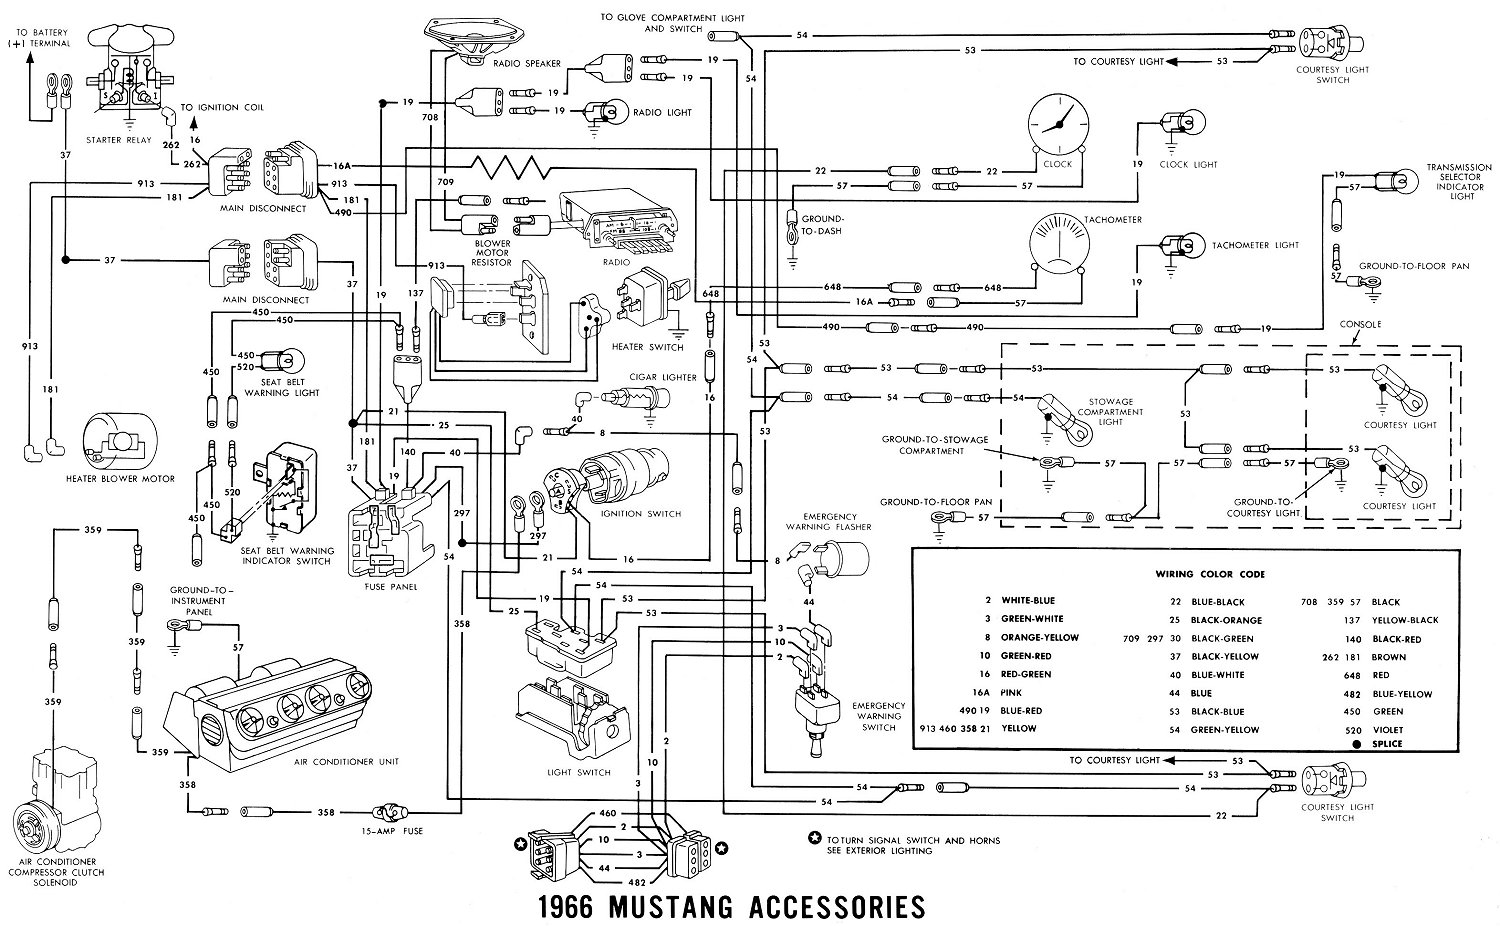 66acces1 1966 mustang wiring diagrams average joe restoration lionel accessories wiring diagrams at bayanpartner.co